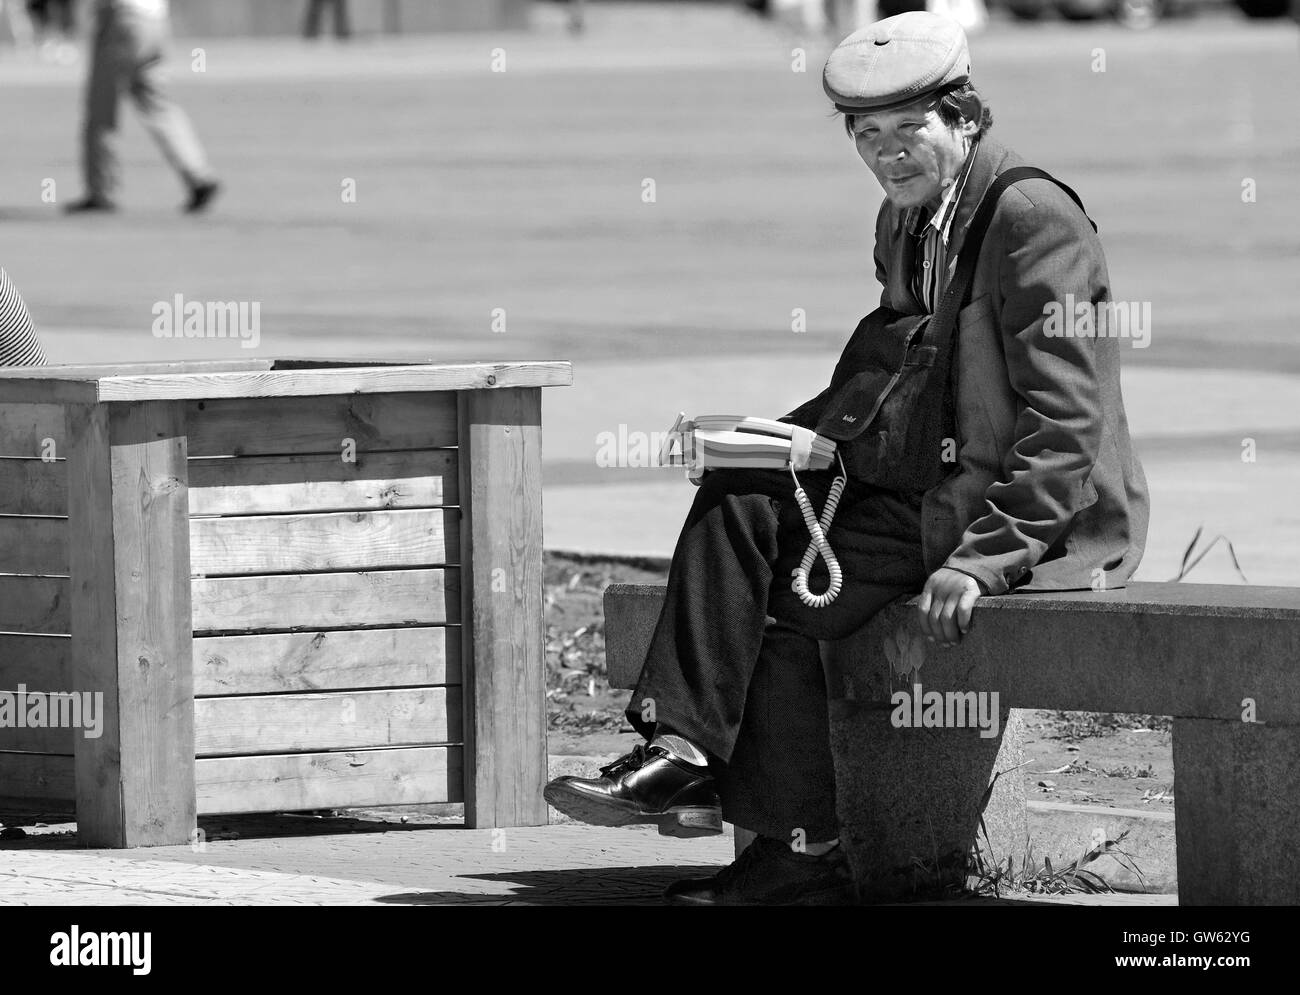 A solitary man waiting for customers to rent his phone to call their relatives, Ulan Bator, Mongolia - Stock Image